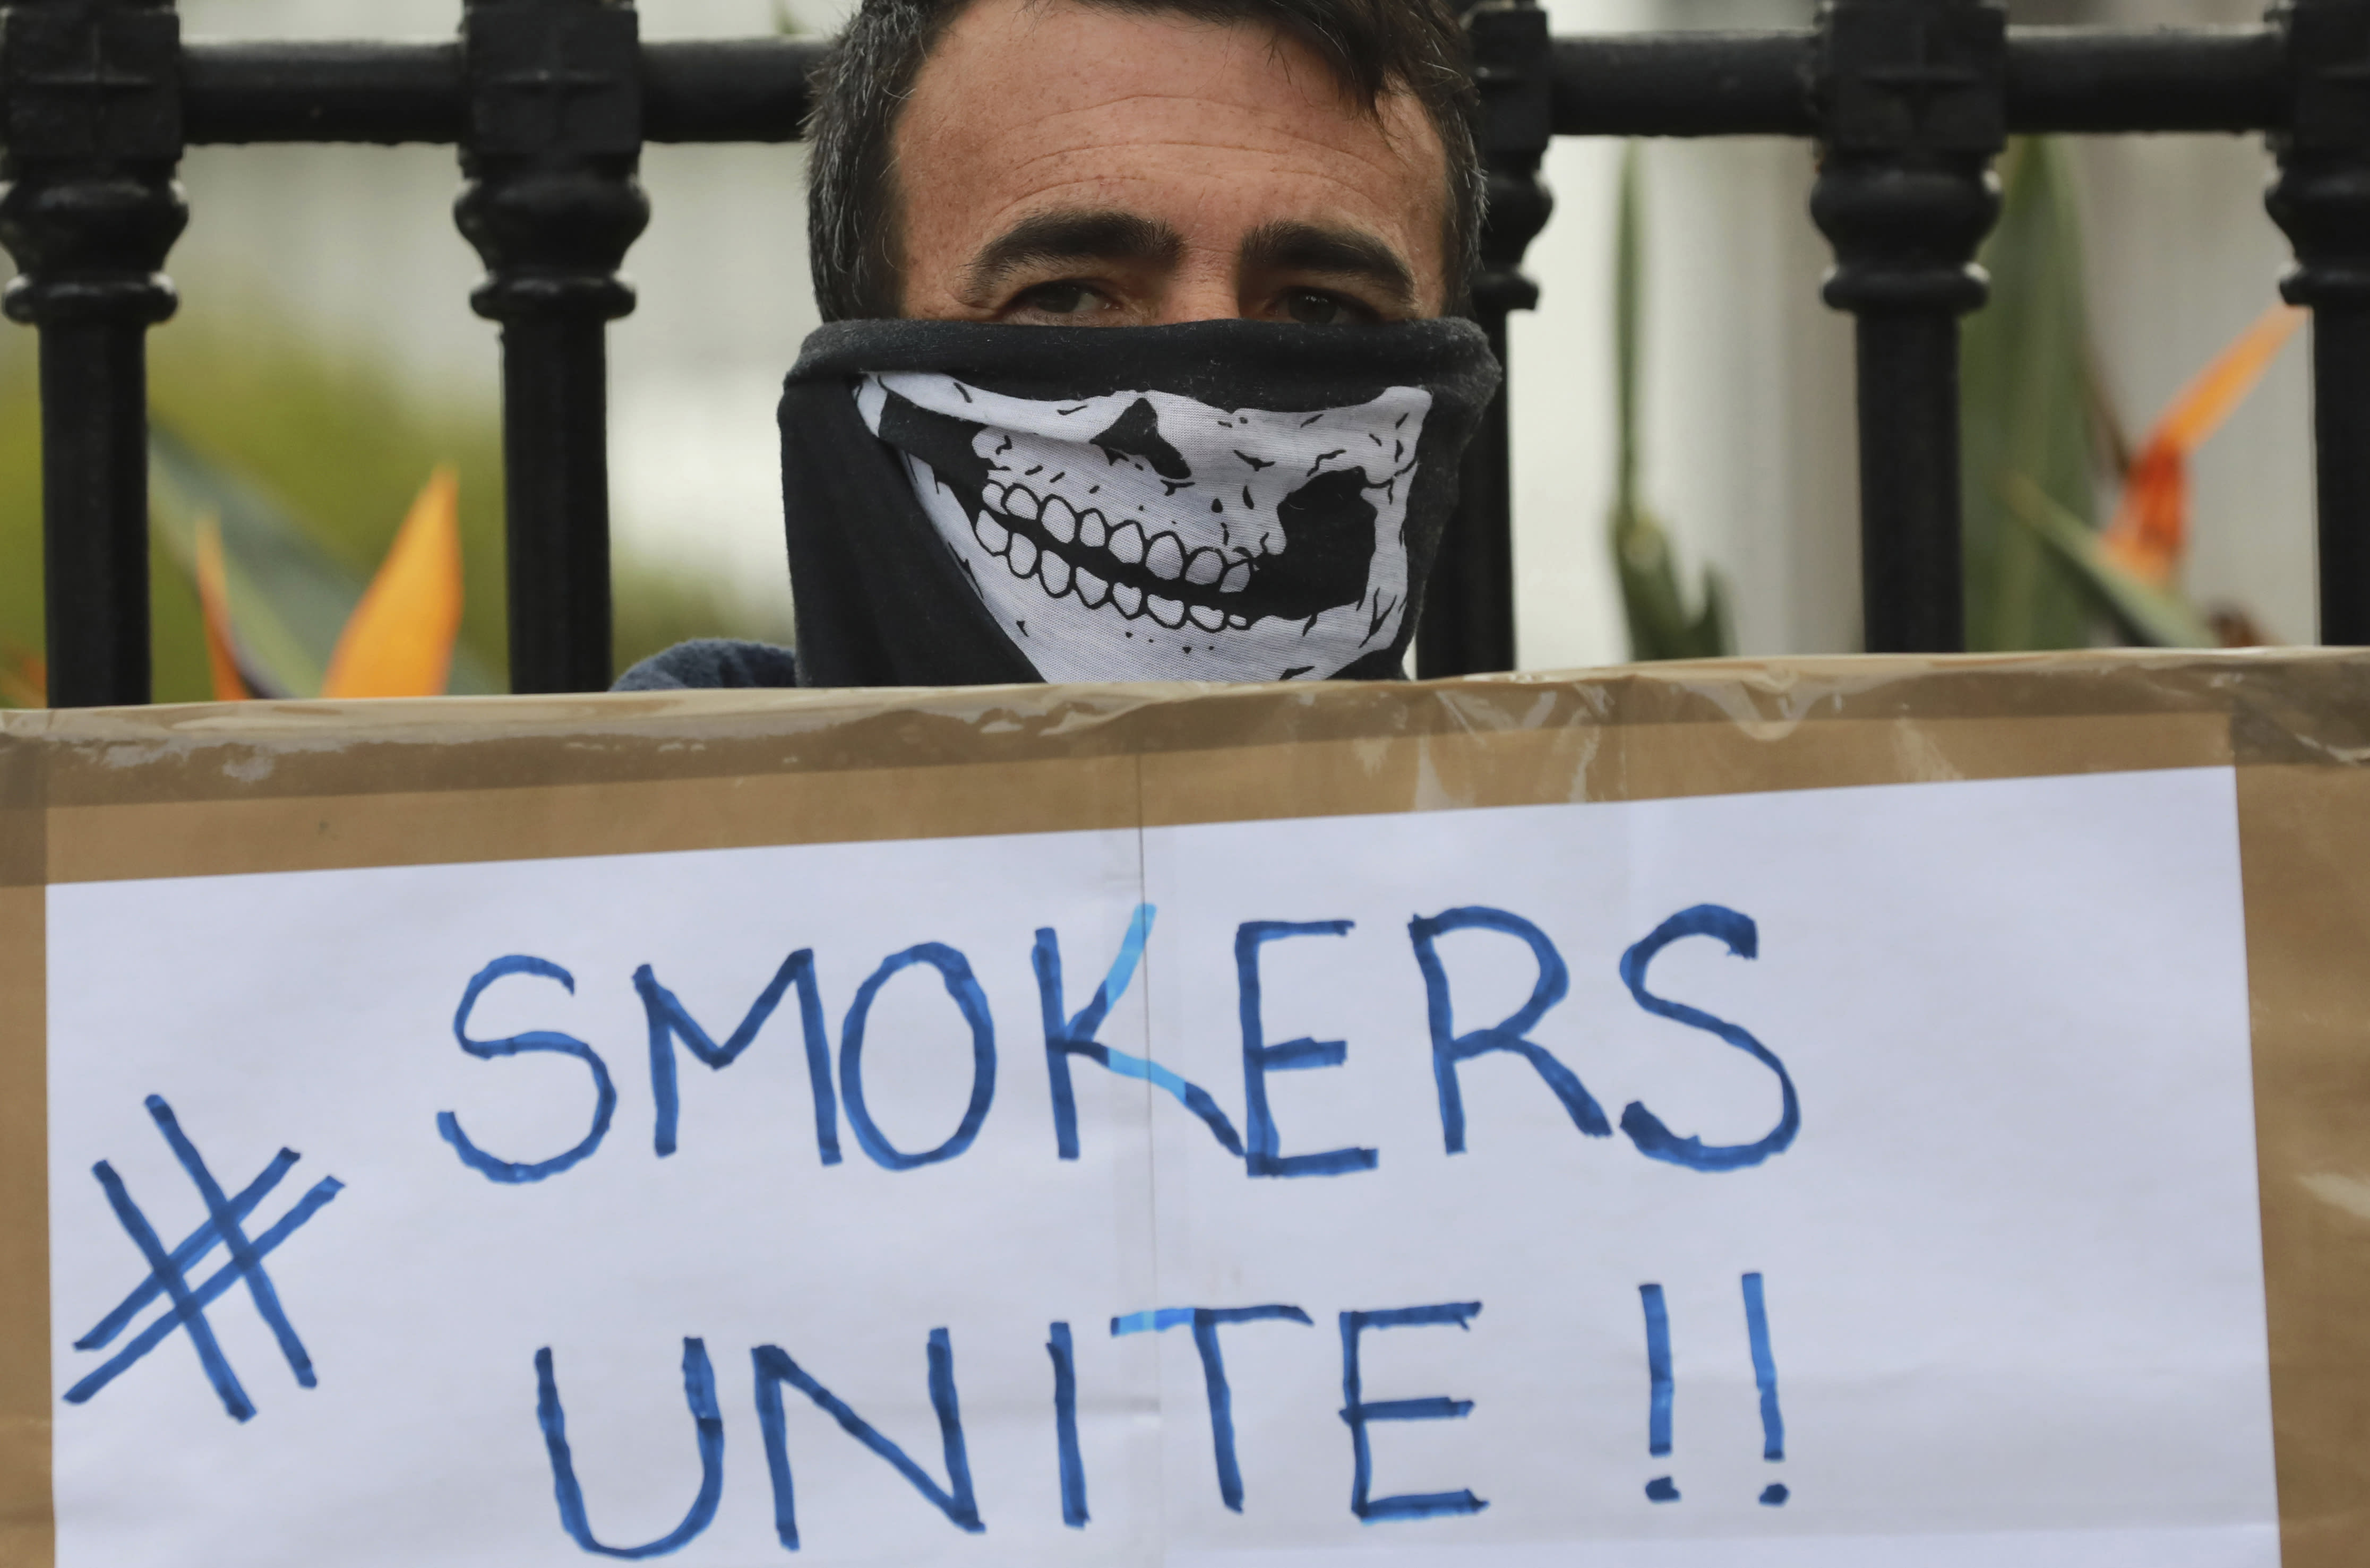 FILE — In this June 2, 2020 file photo, a demonstrator holds a placard during a protest against the tobacco ban outside parliament in Cape Town, South Africa. South Africa is three months into a ban on the sale of cigarettes and other tobacco products, an unusual tactic employed by a government to protect the health of its citizens during the coronavirus pandemic. The country is one of just a few around the world to have banned tobacco sales during the pandemic and the only one to still have it in place. (AP Photo/Nardus Engelbrecht/File)